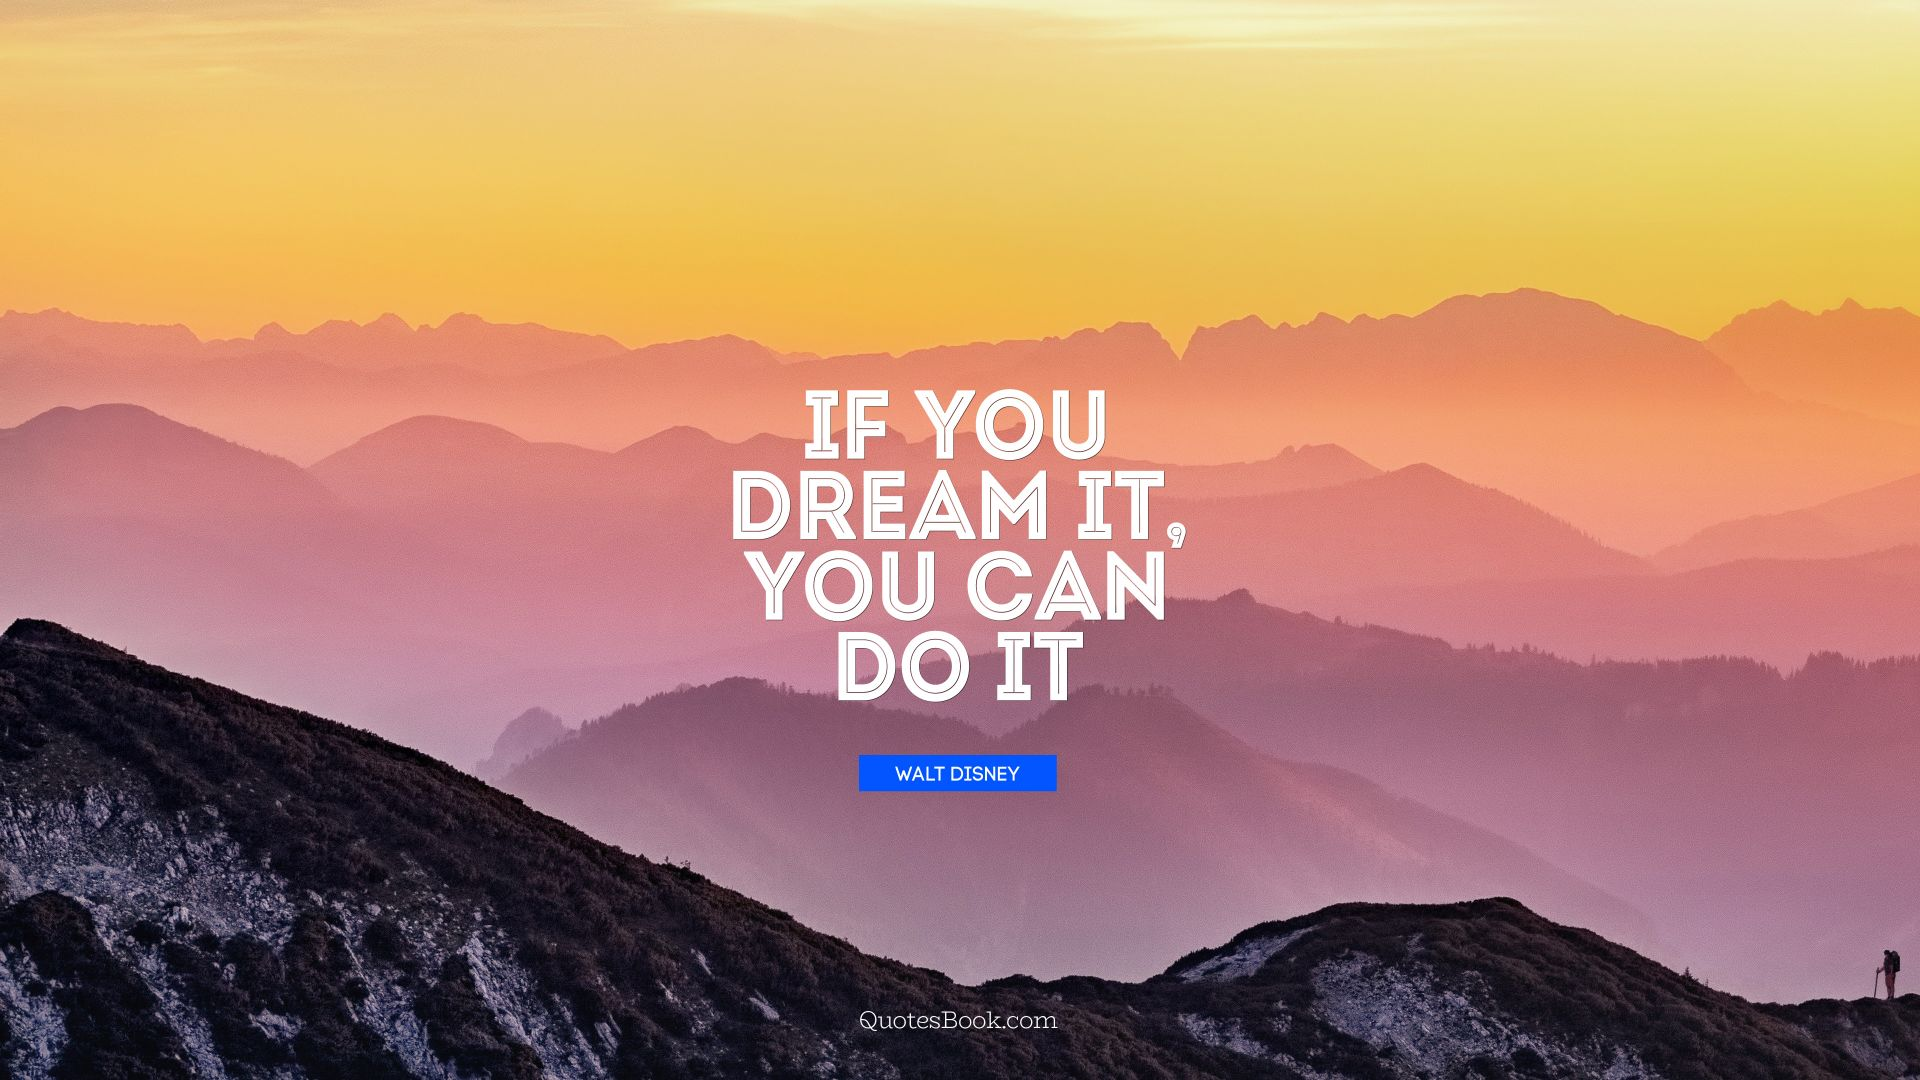 If you dream it, you can do it. - Quote by Walt Disney